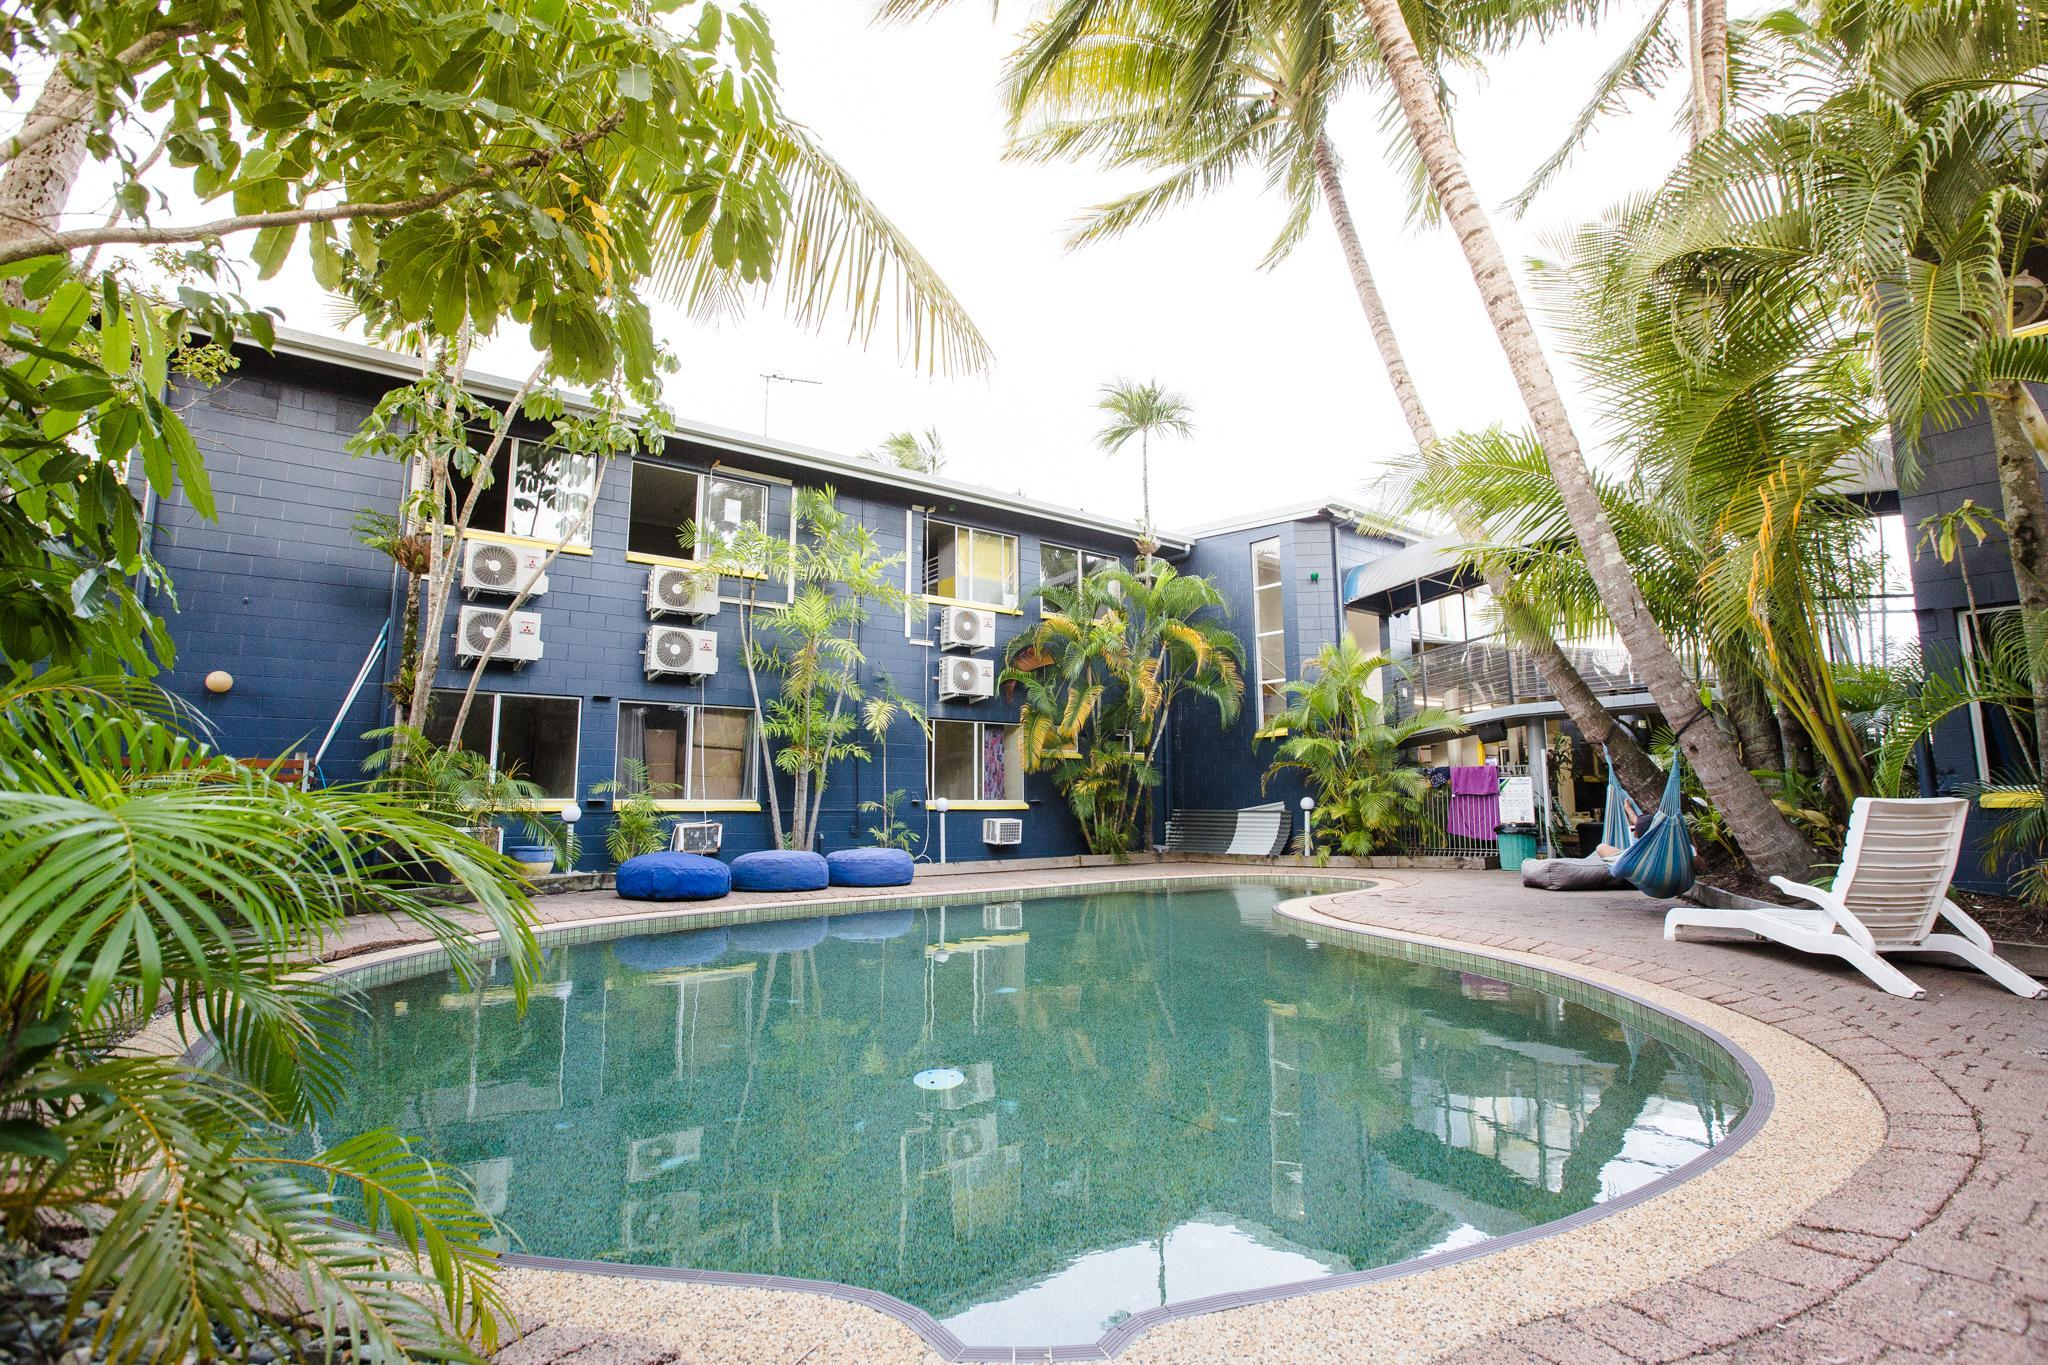 Mad Monkey Backpackers Village